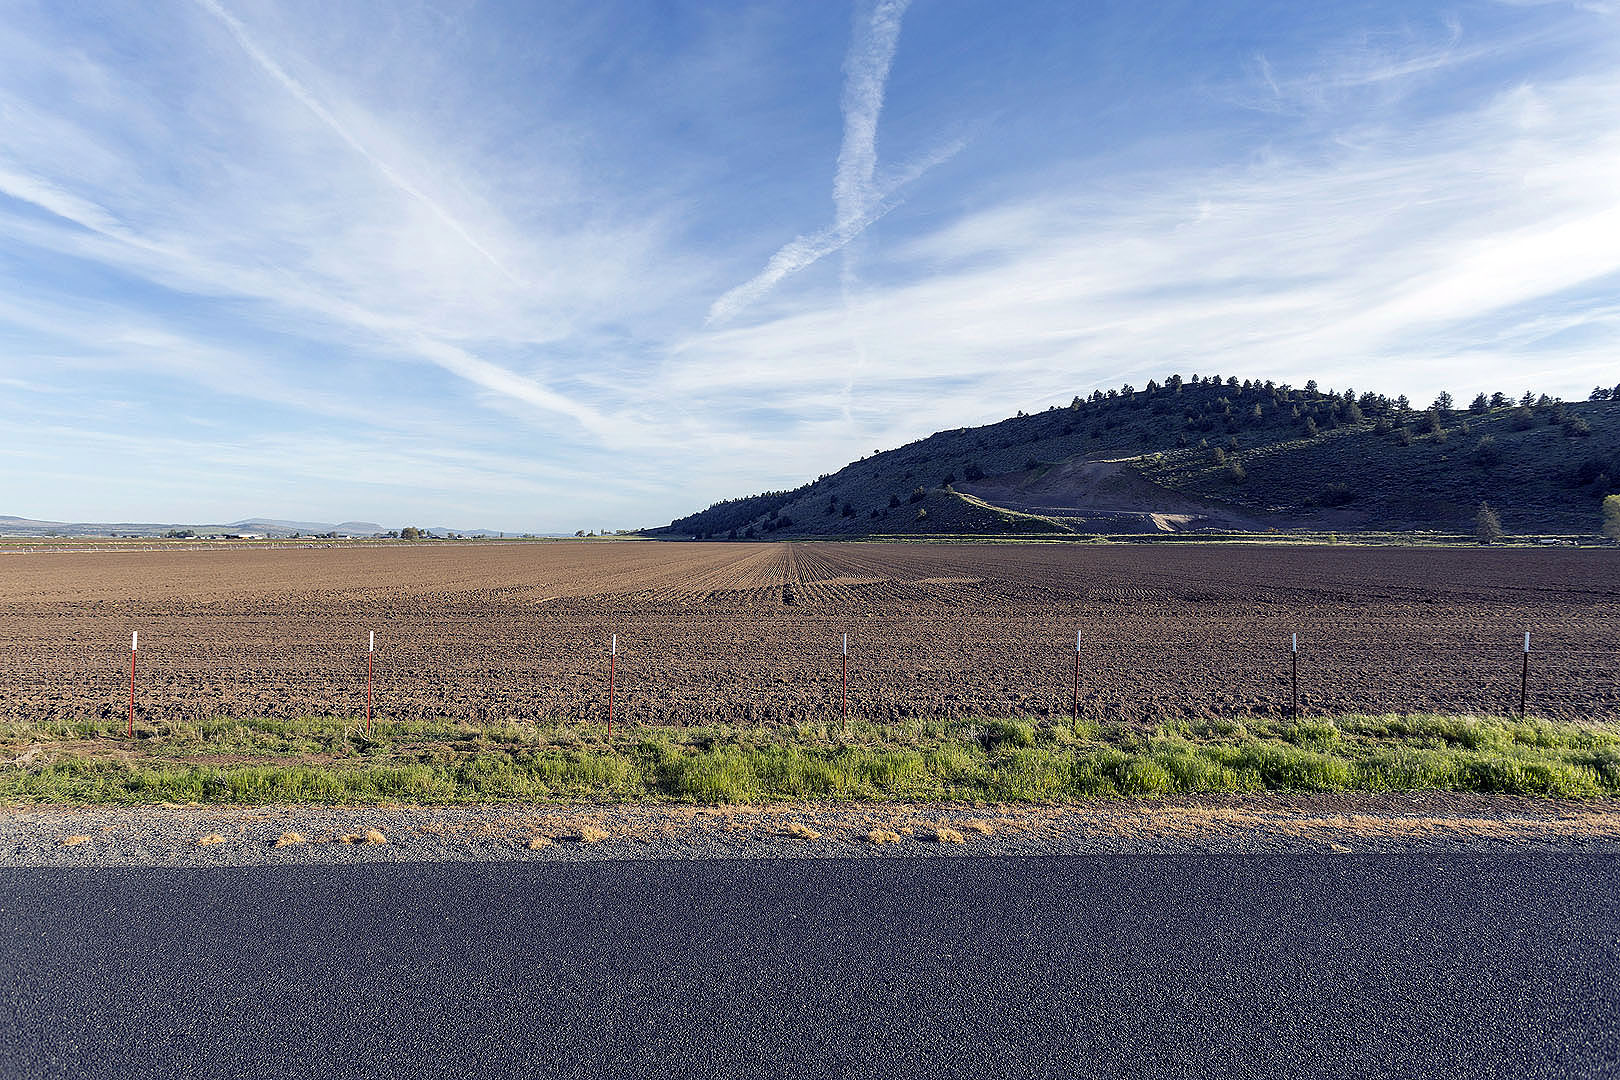 Crop Fields in Klamath County